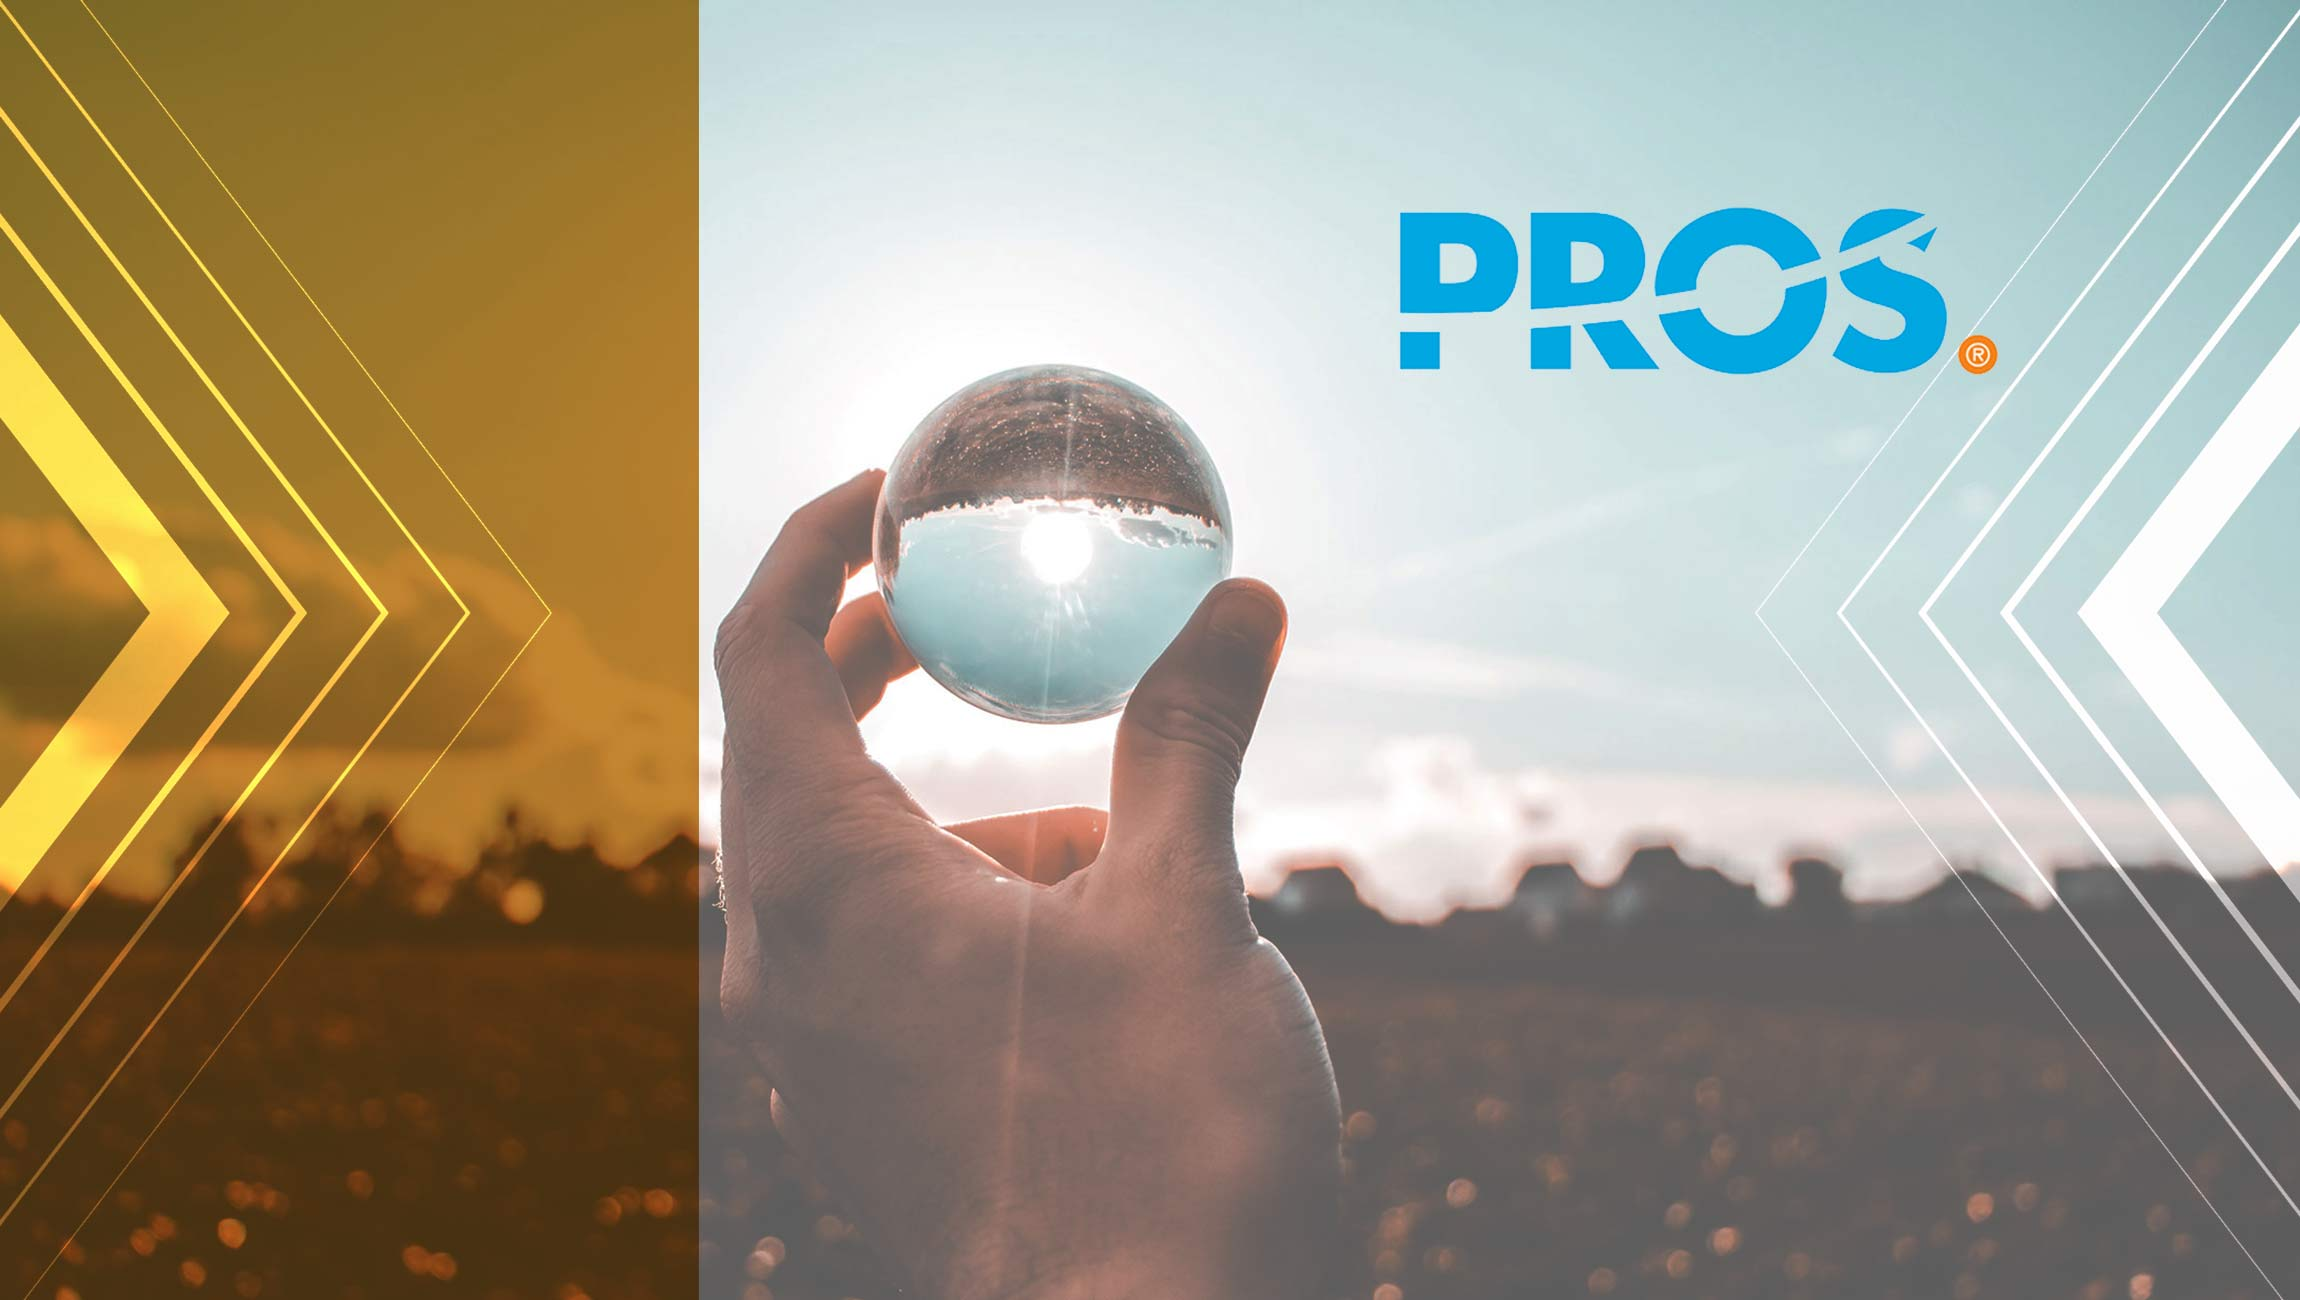 PROS Appoints Tech Industry Powerhouse Katrina Klier as Chief Marketing Officer